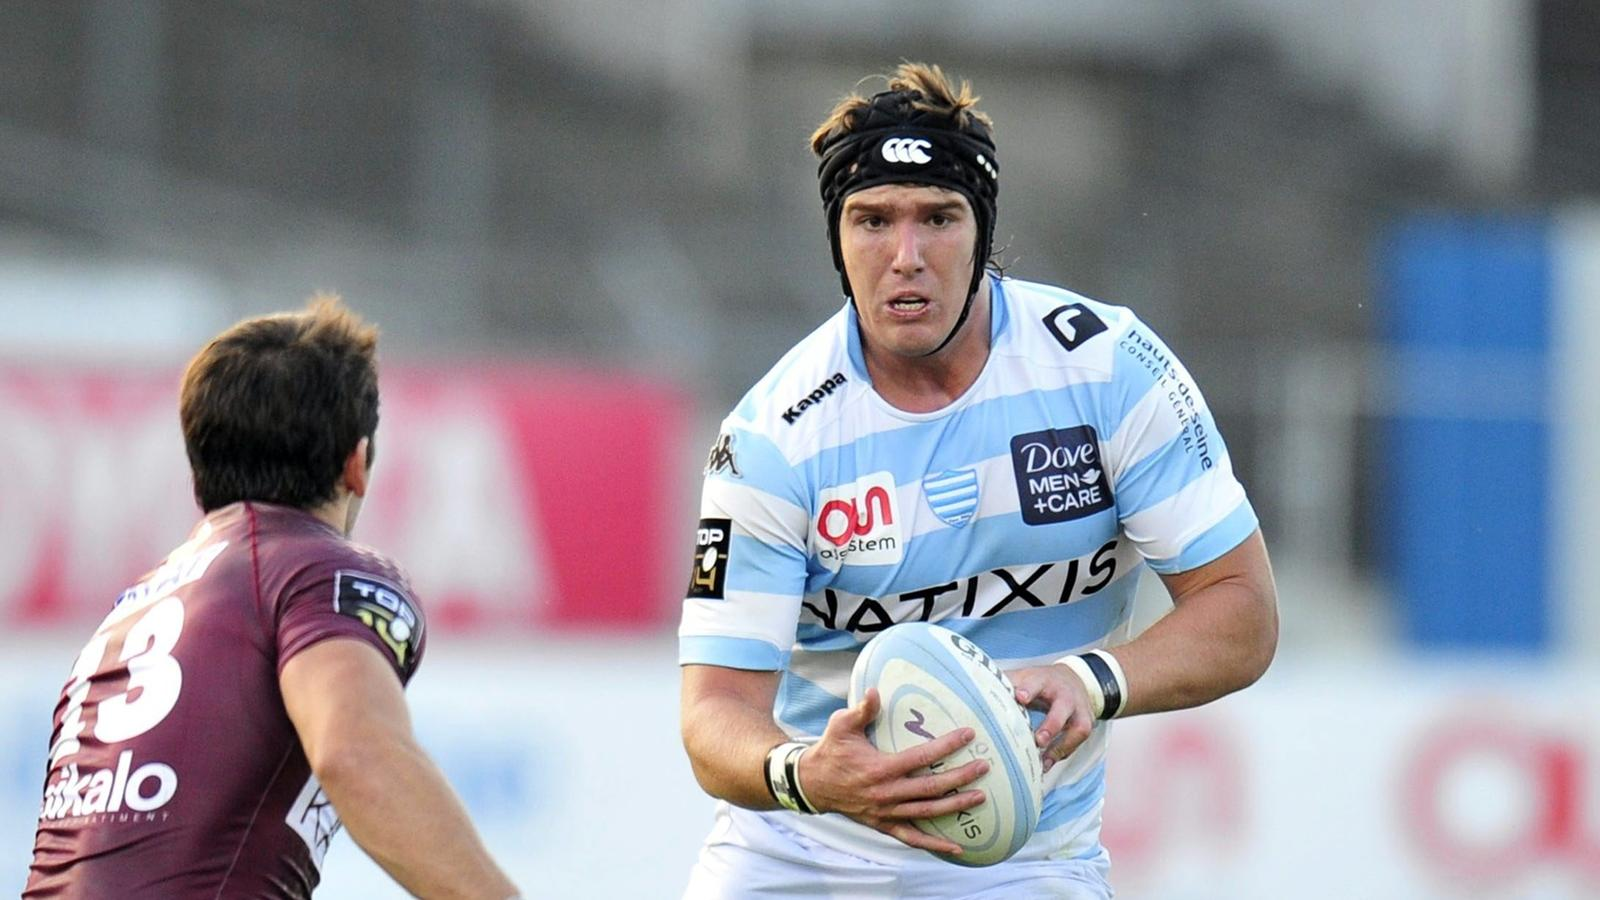 Bernard LE ROUX - 01.09.2012 - Racing Metro 92 / Bordeaux-Begles